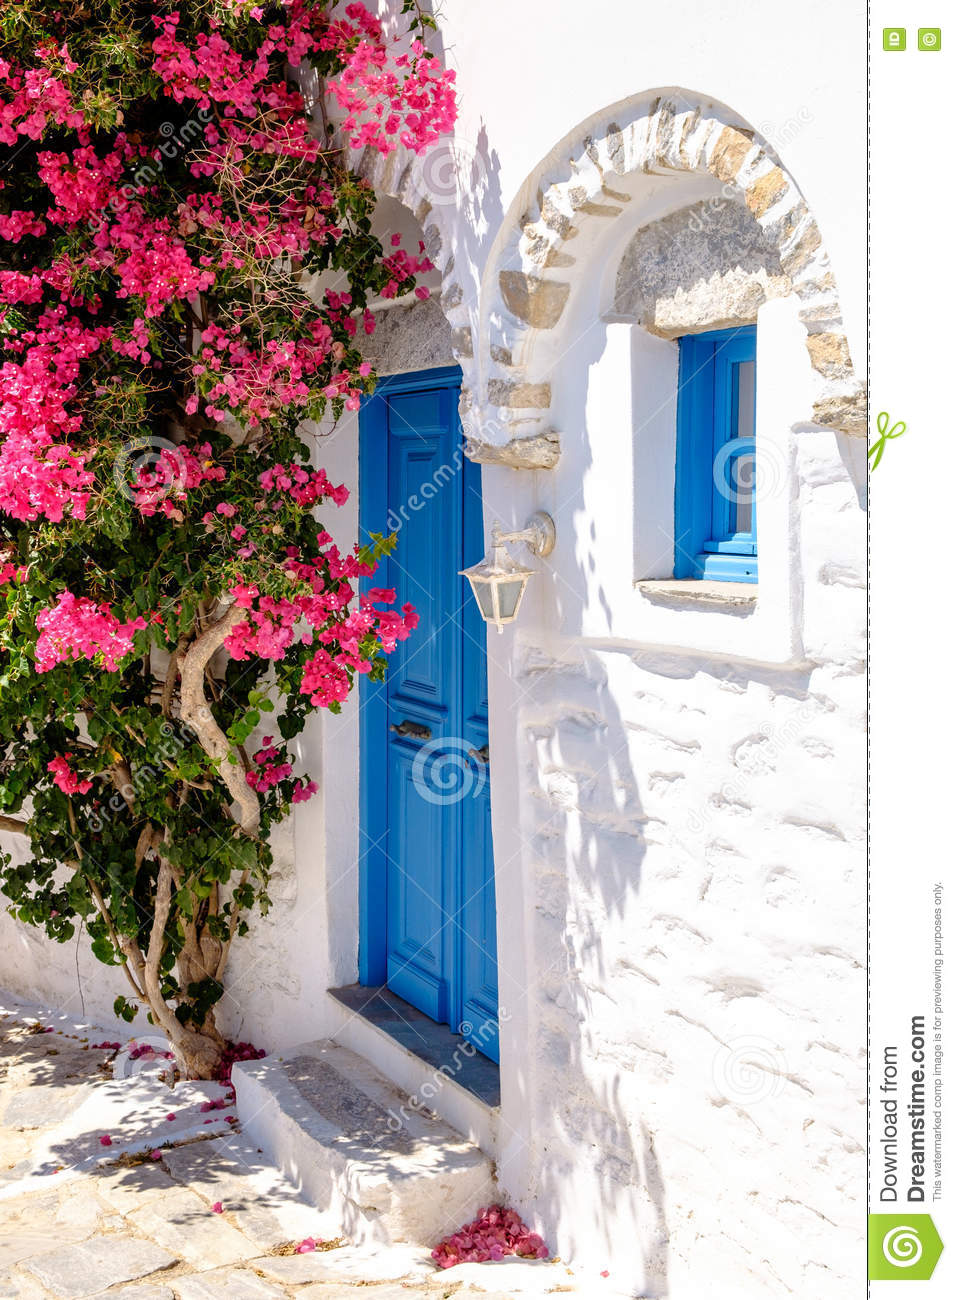 Colorful doors and flowers in white mediterranean street, Amorgo